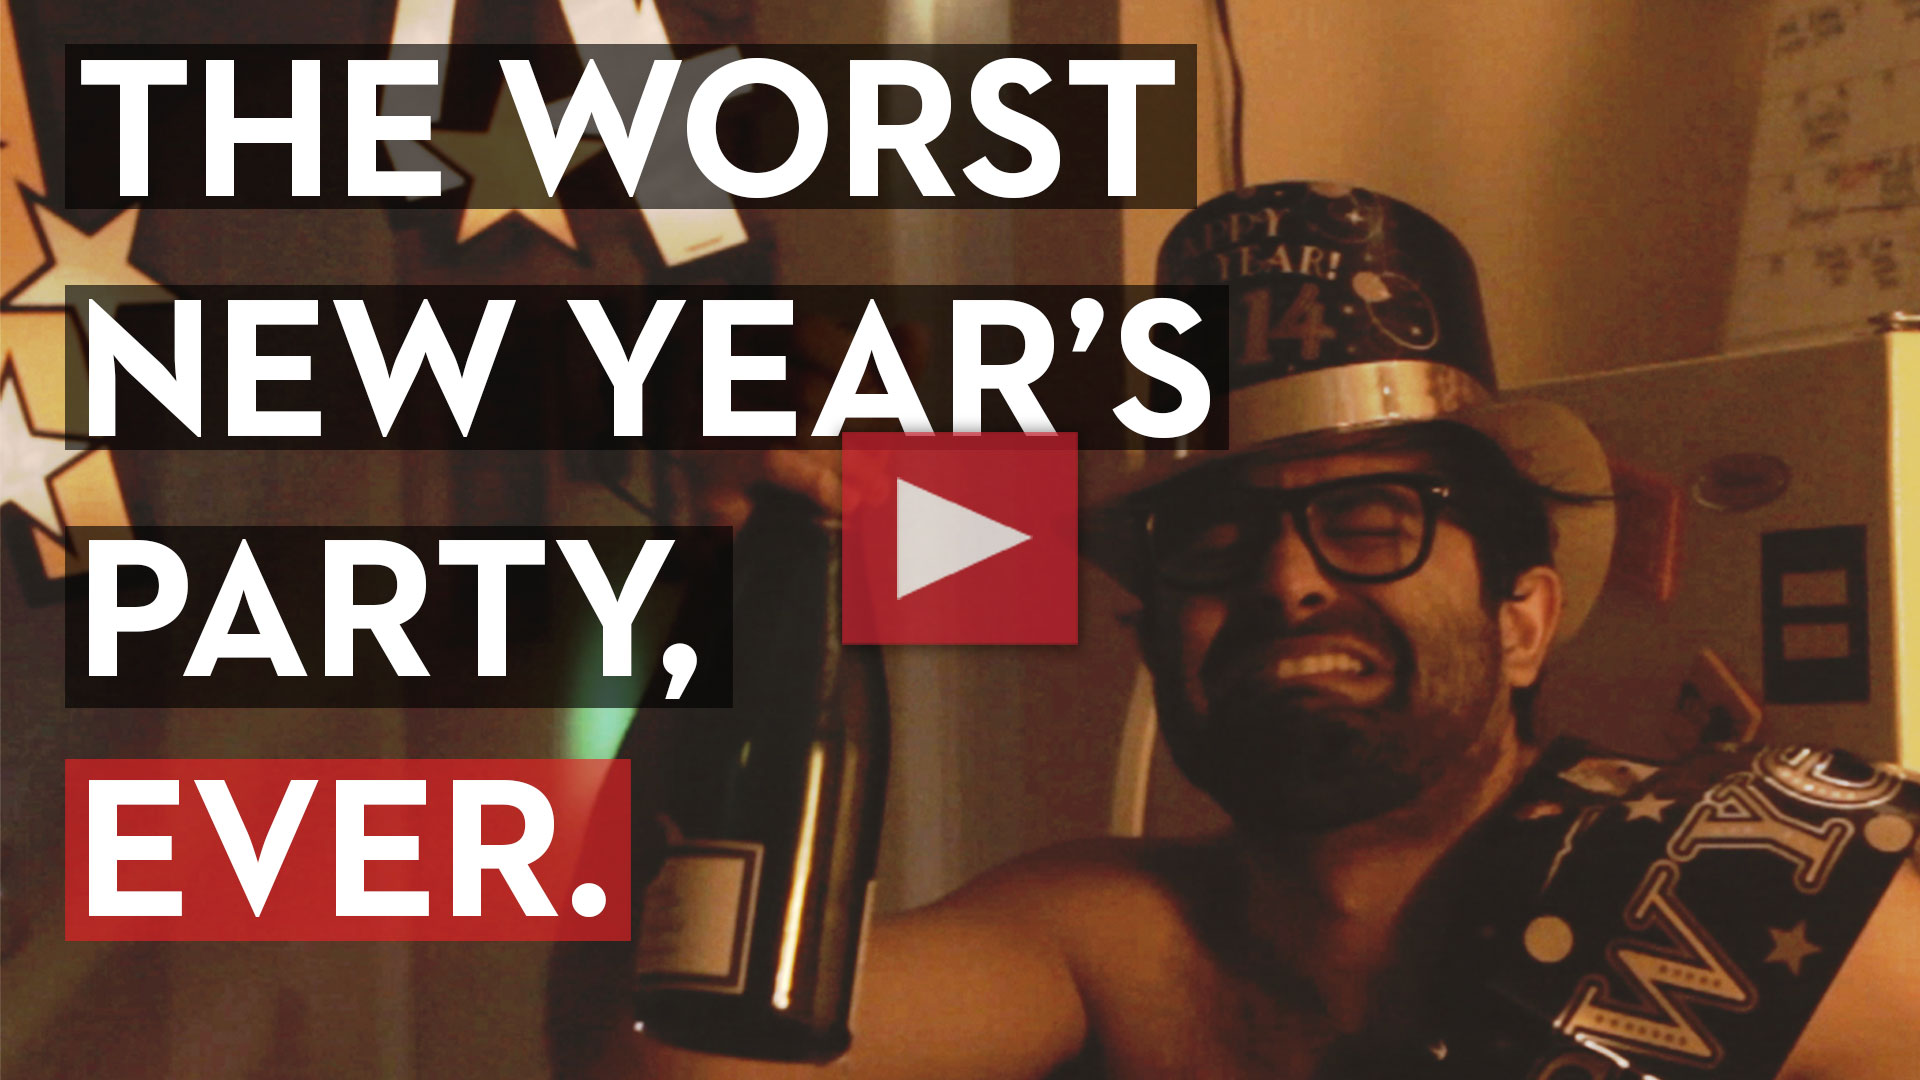 The Worst New Year's Party Ever